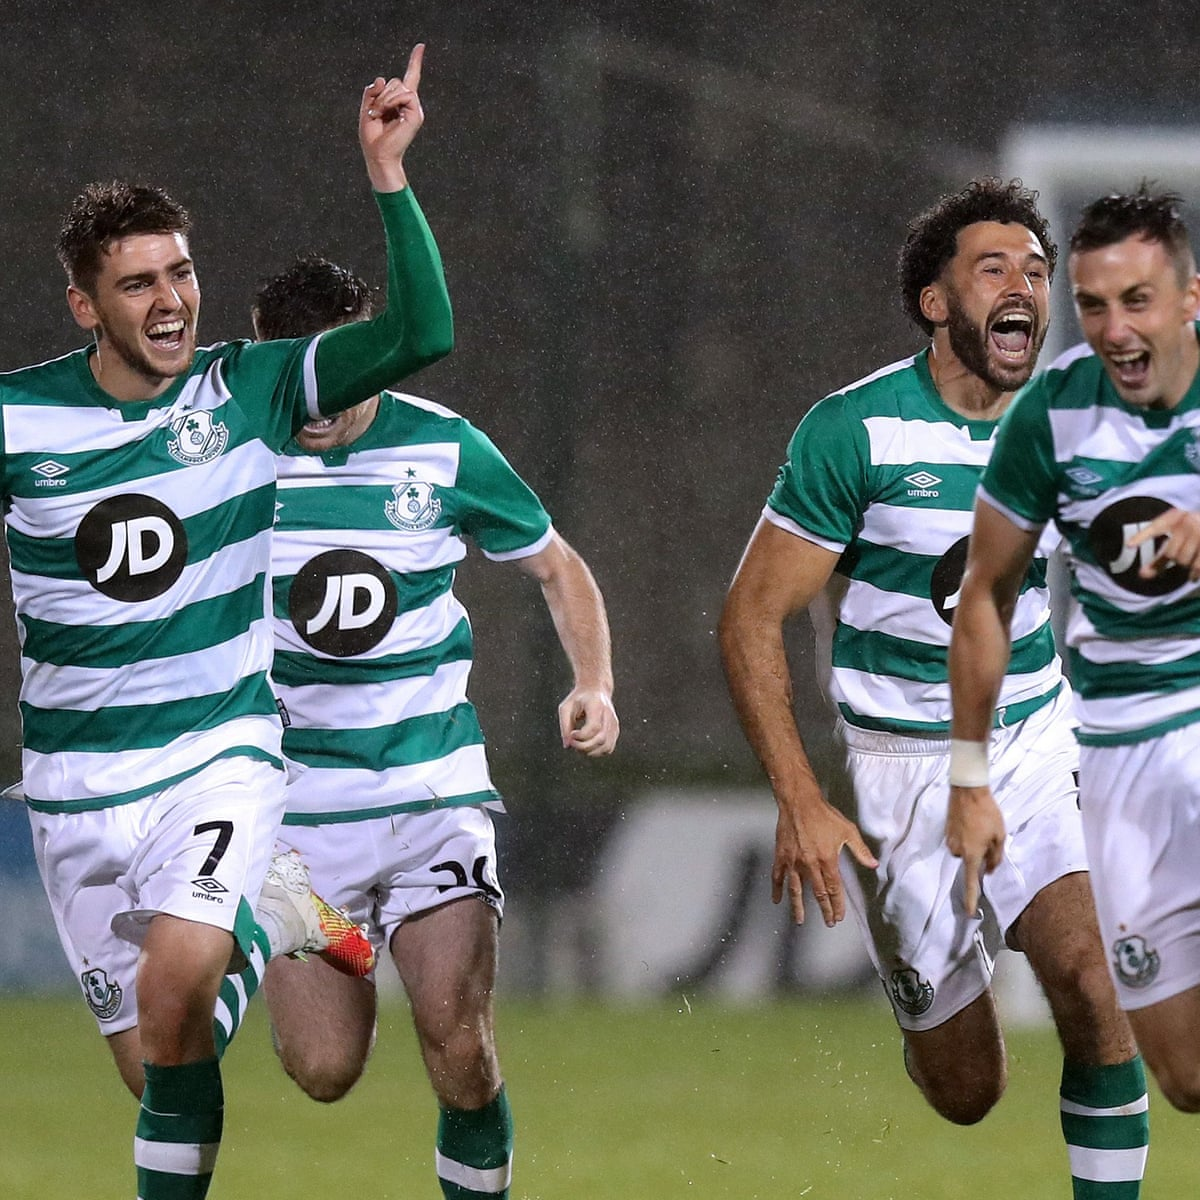 The Pressure Is On Milan Shamrock Rovers Prepare For Italian Giants Shamrock Rovers The Guardian